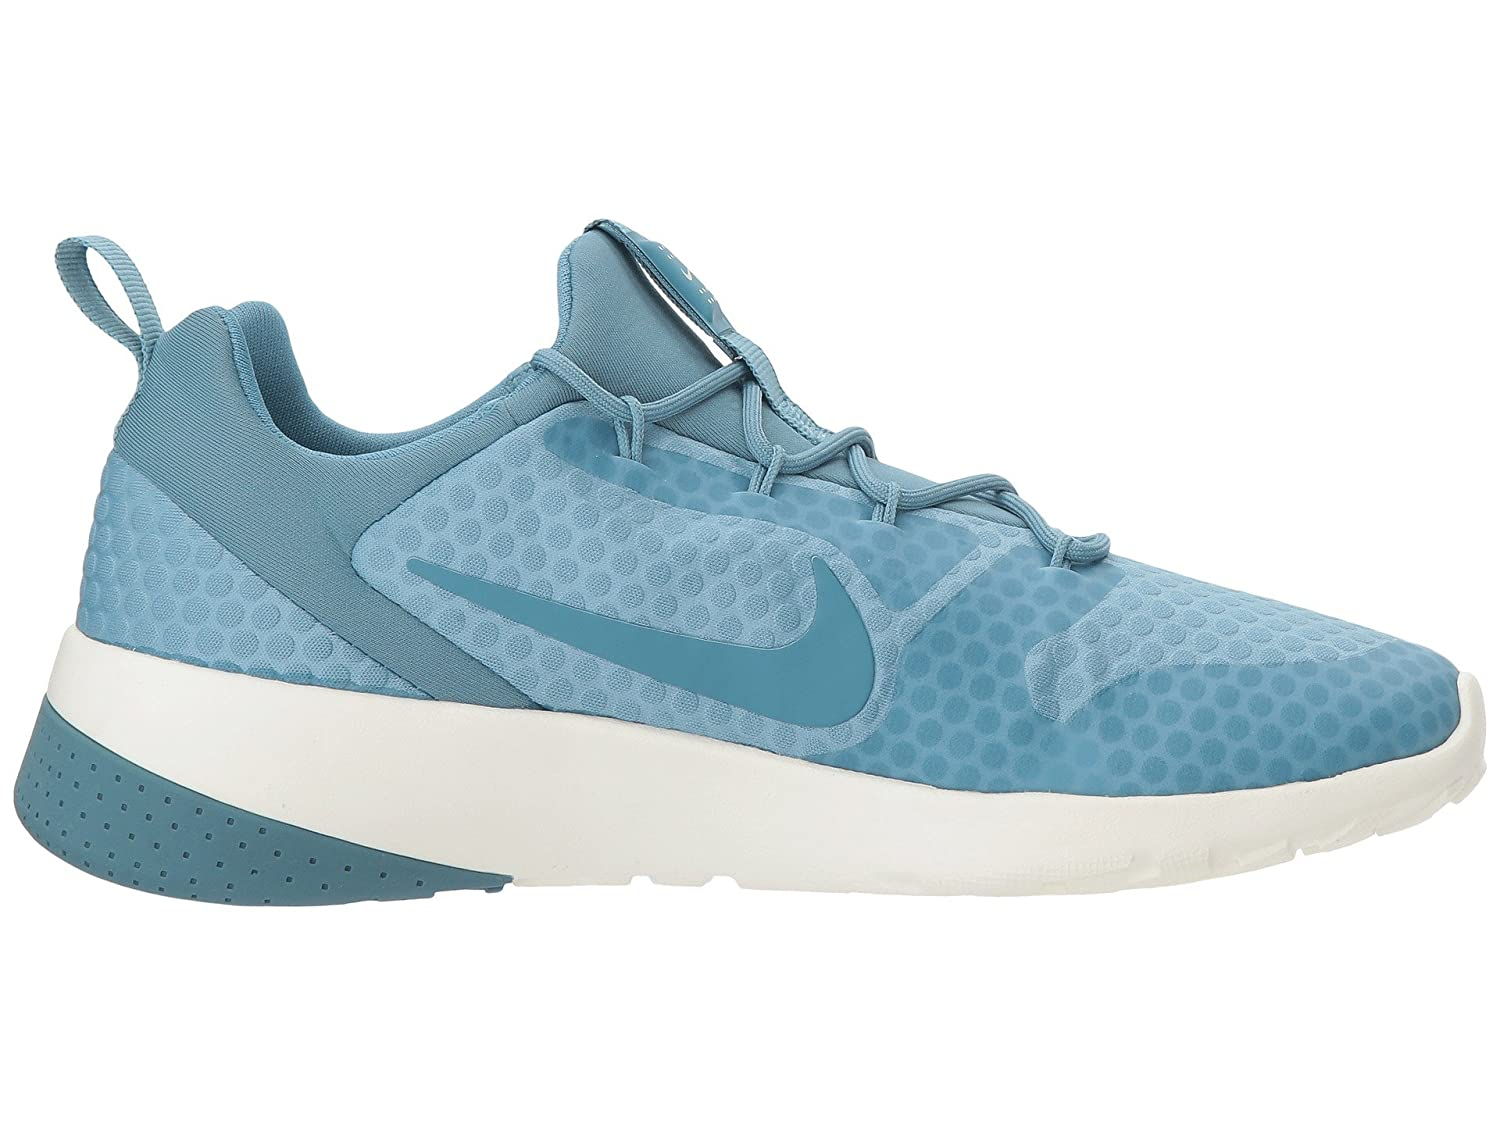 NIKE Air Zoom 90 Spikeless Golf Shoes 2017 Women B06W9FGXPB 6.5 B(M) US|Cerulean/Cerulean/Sail